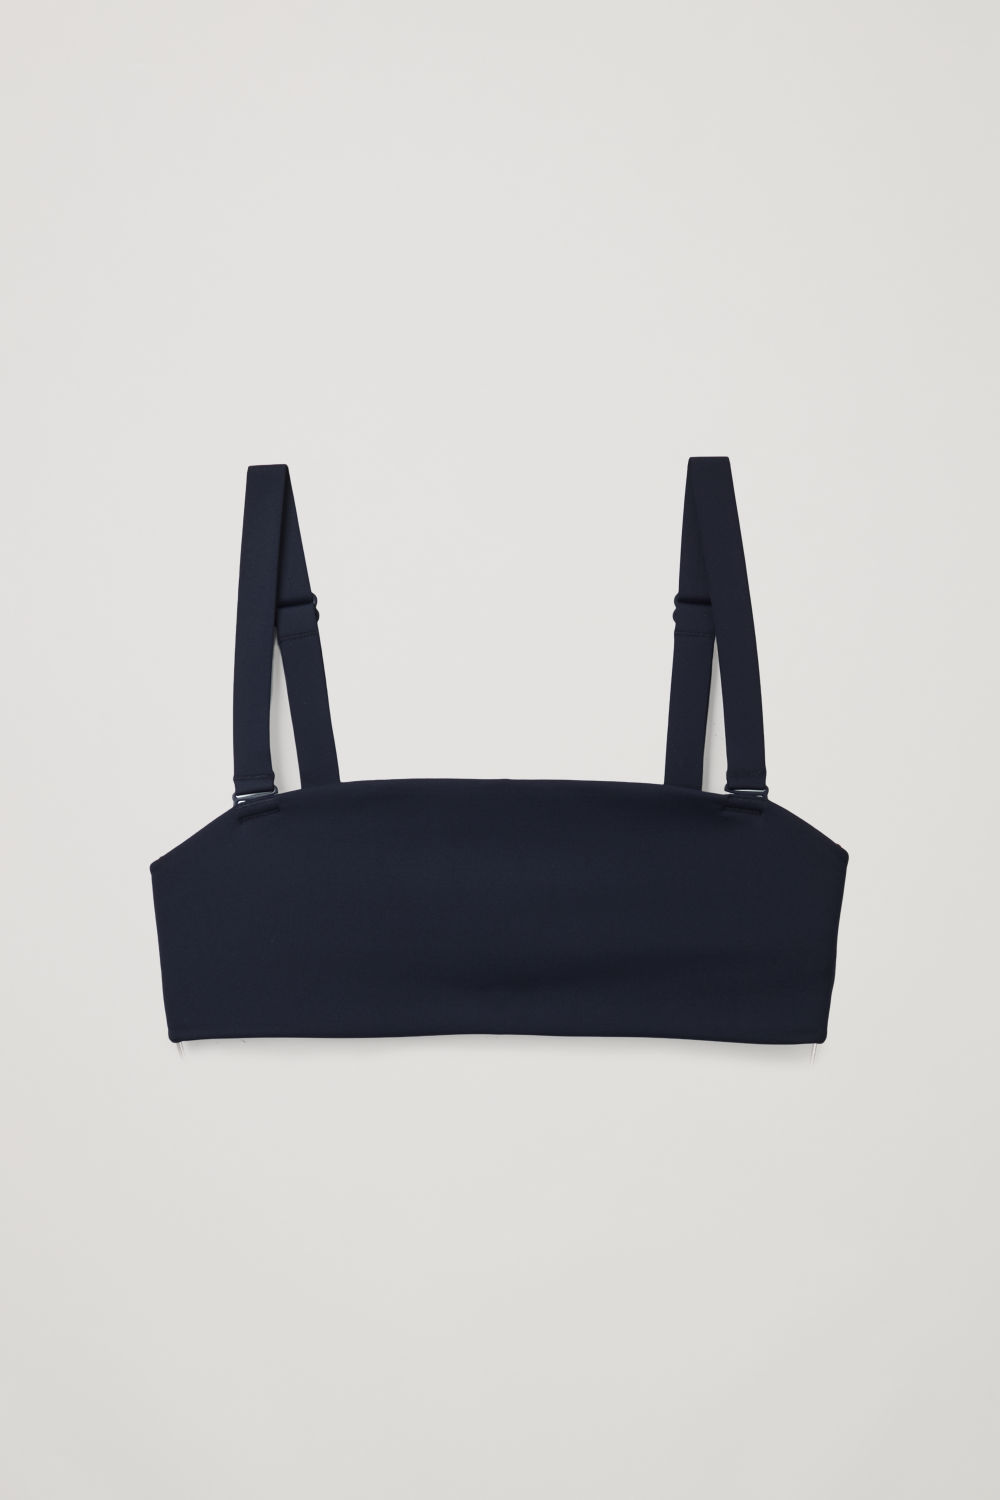 BIKINI TOP WITH REMOVABLE STRAPS